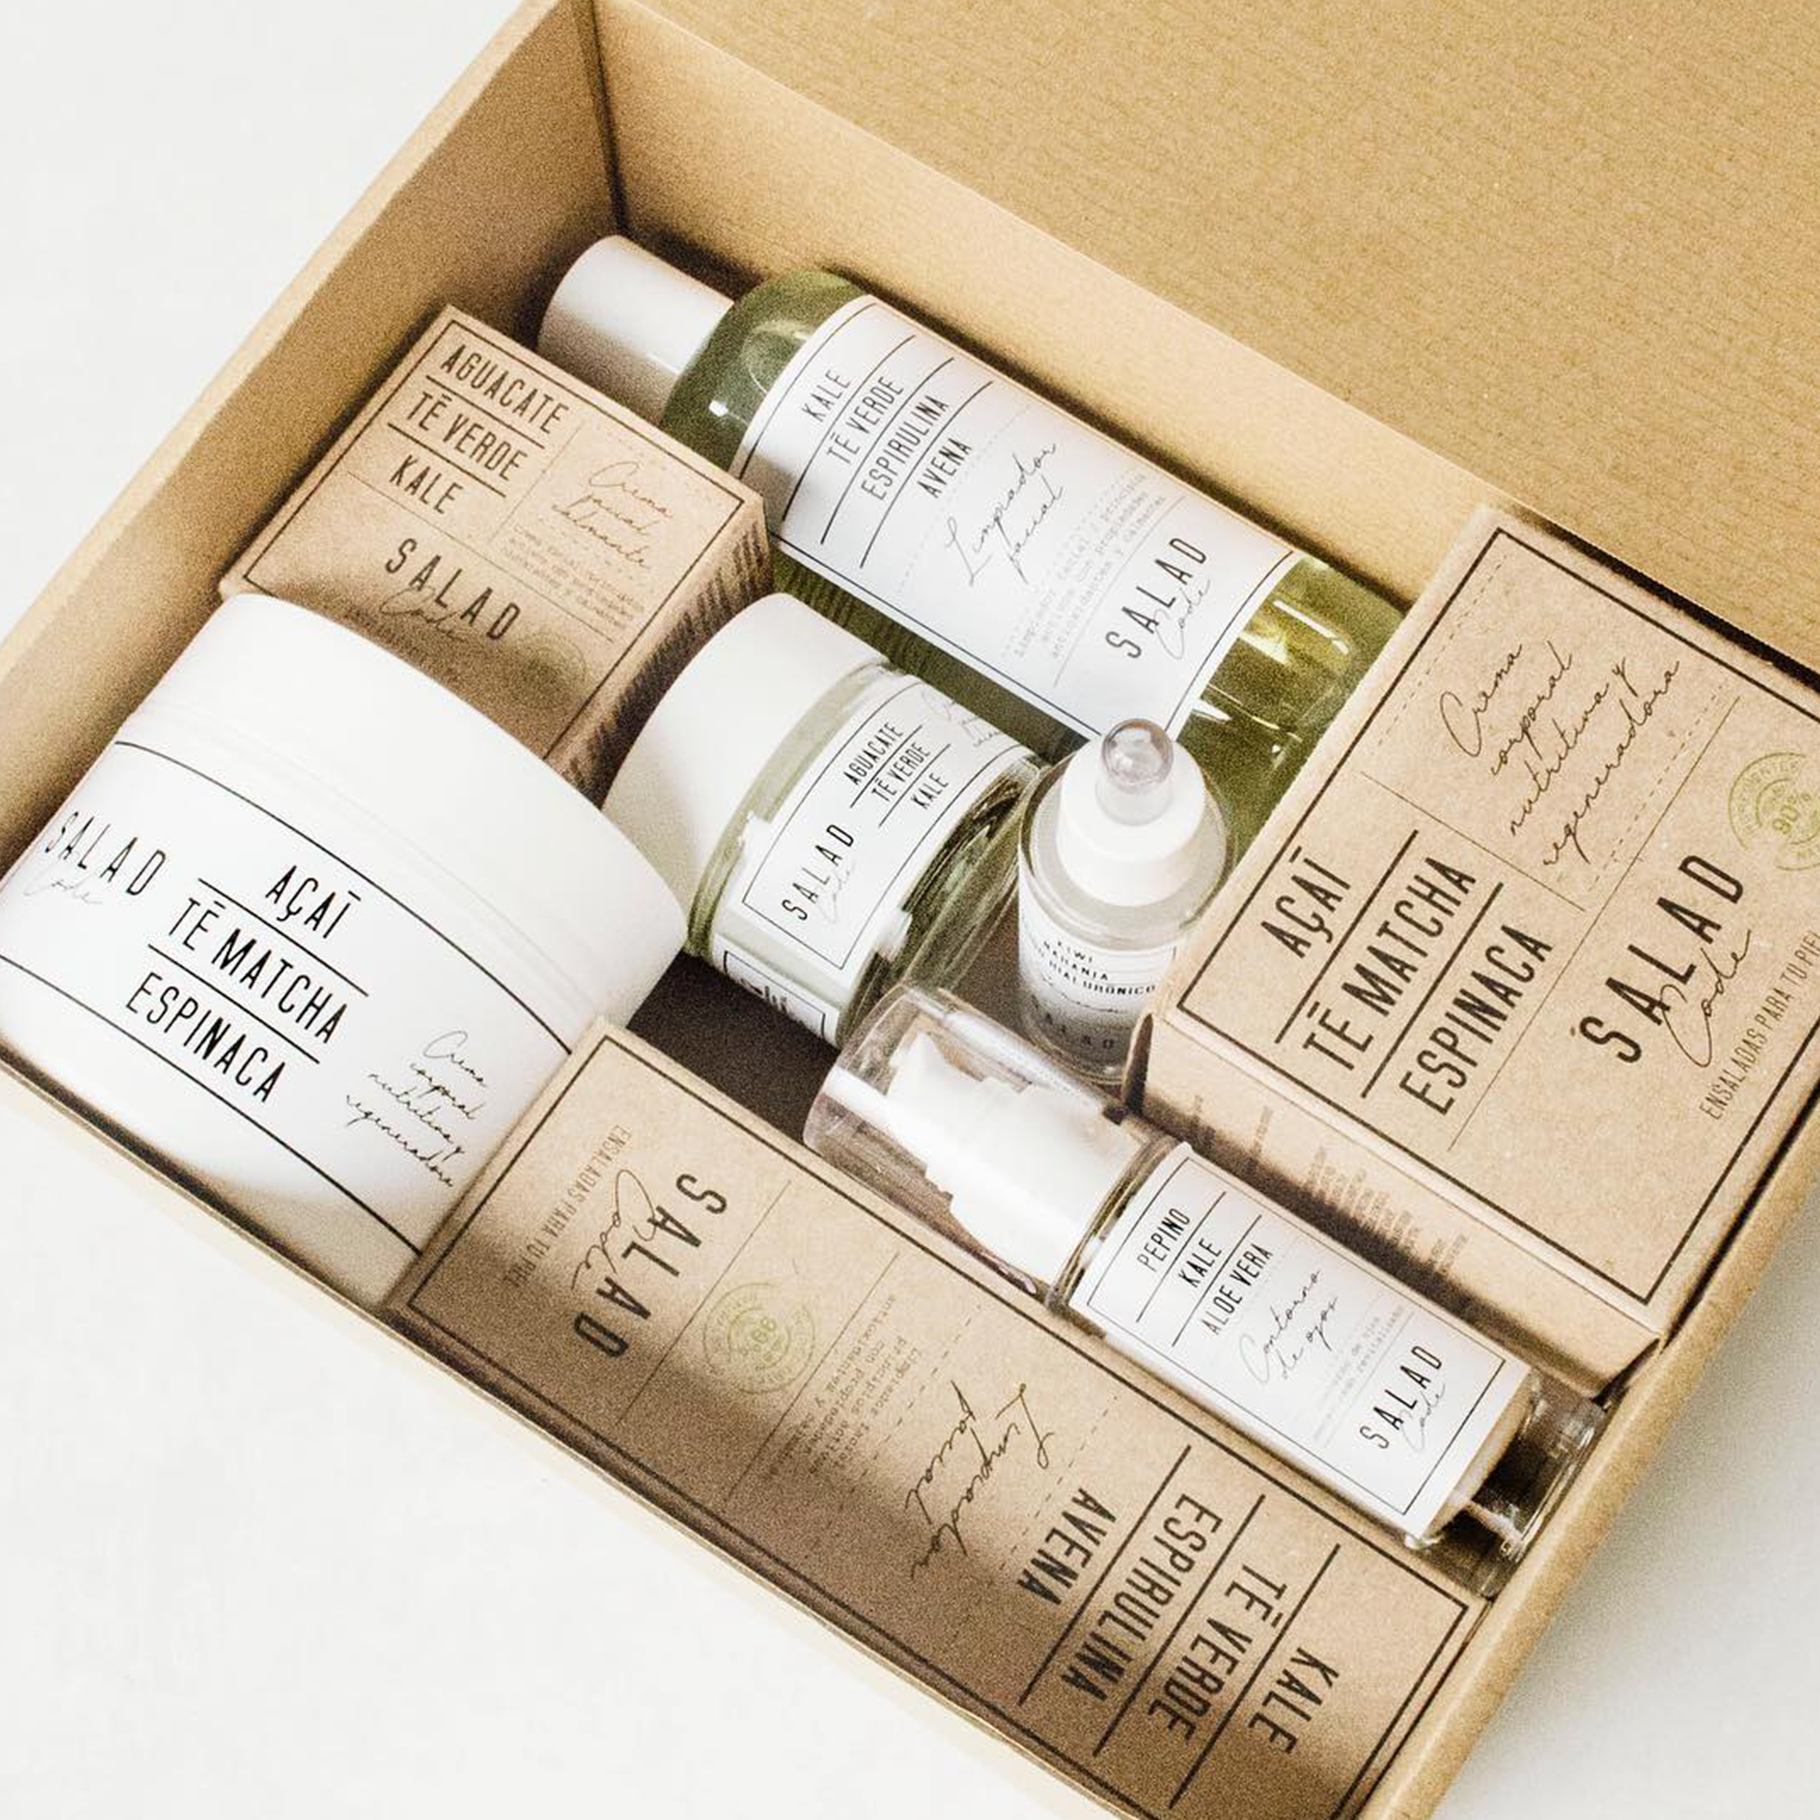 packaging-saladcode-sara-quintana-freelance-diseno-direccion-arte-05